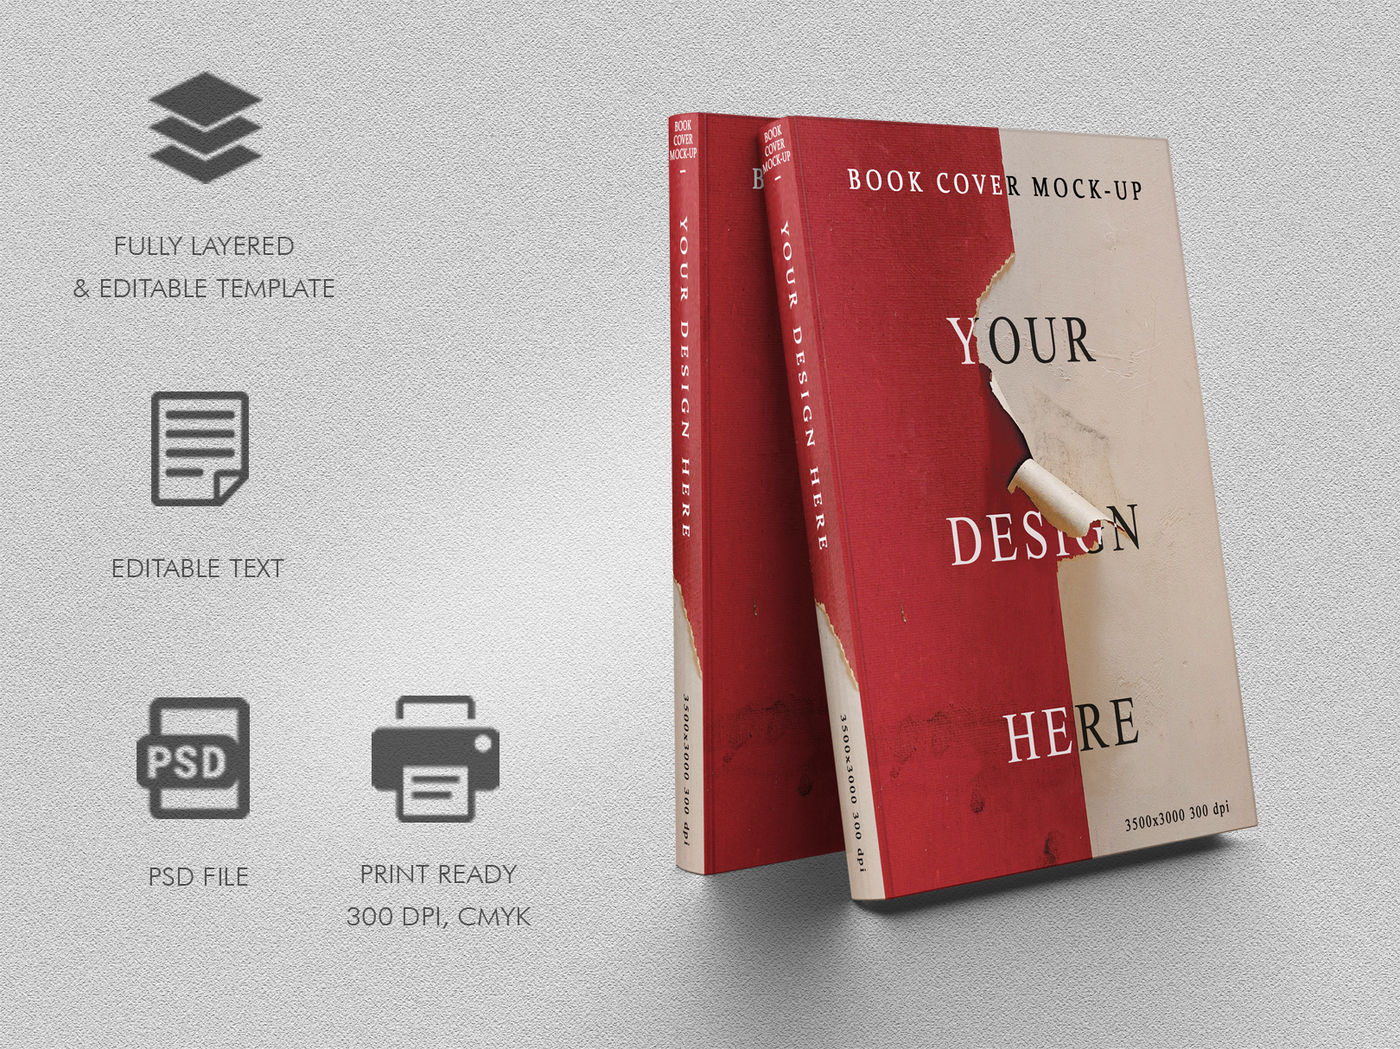 Download Book Mockup Template Psd Yellowimages